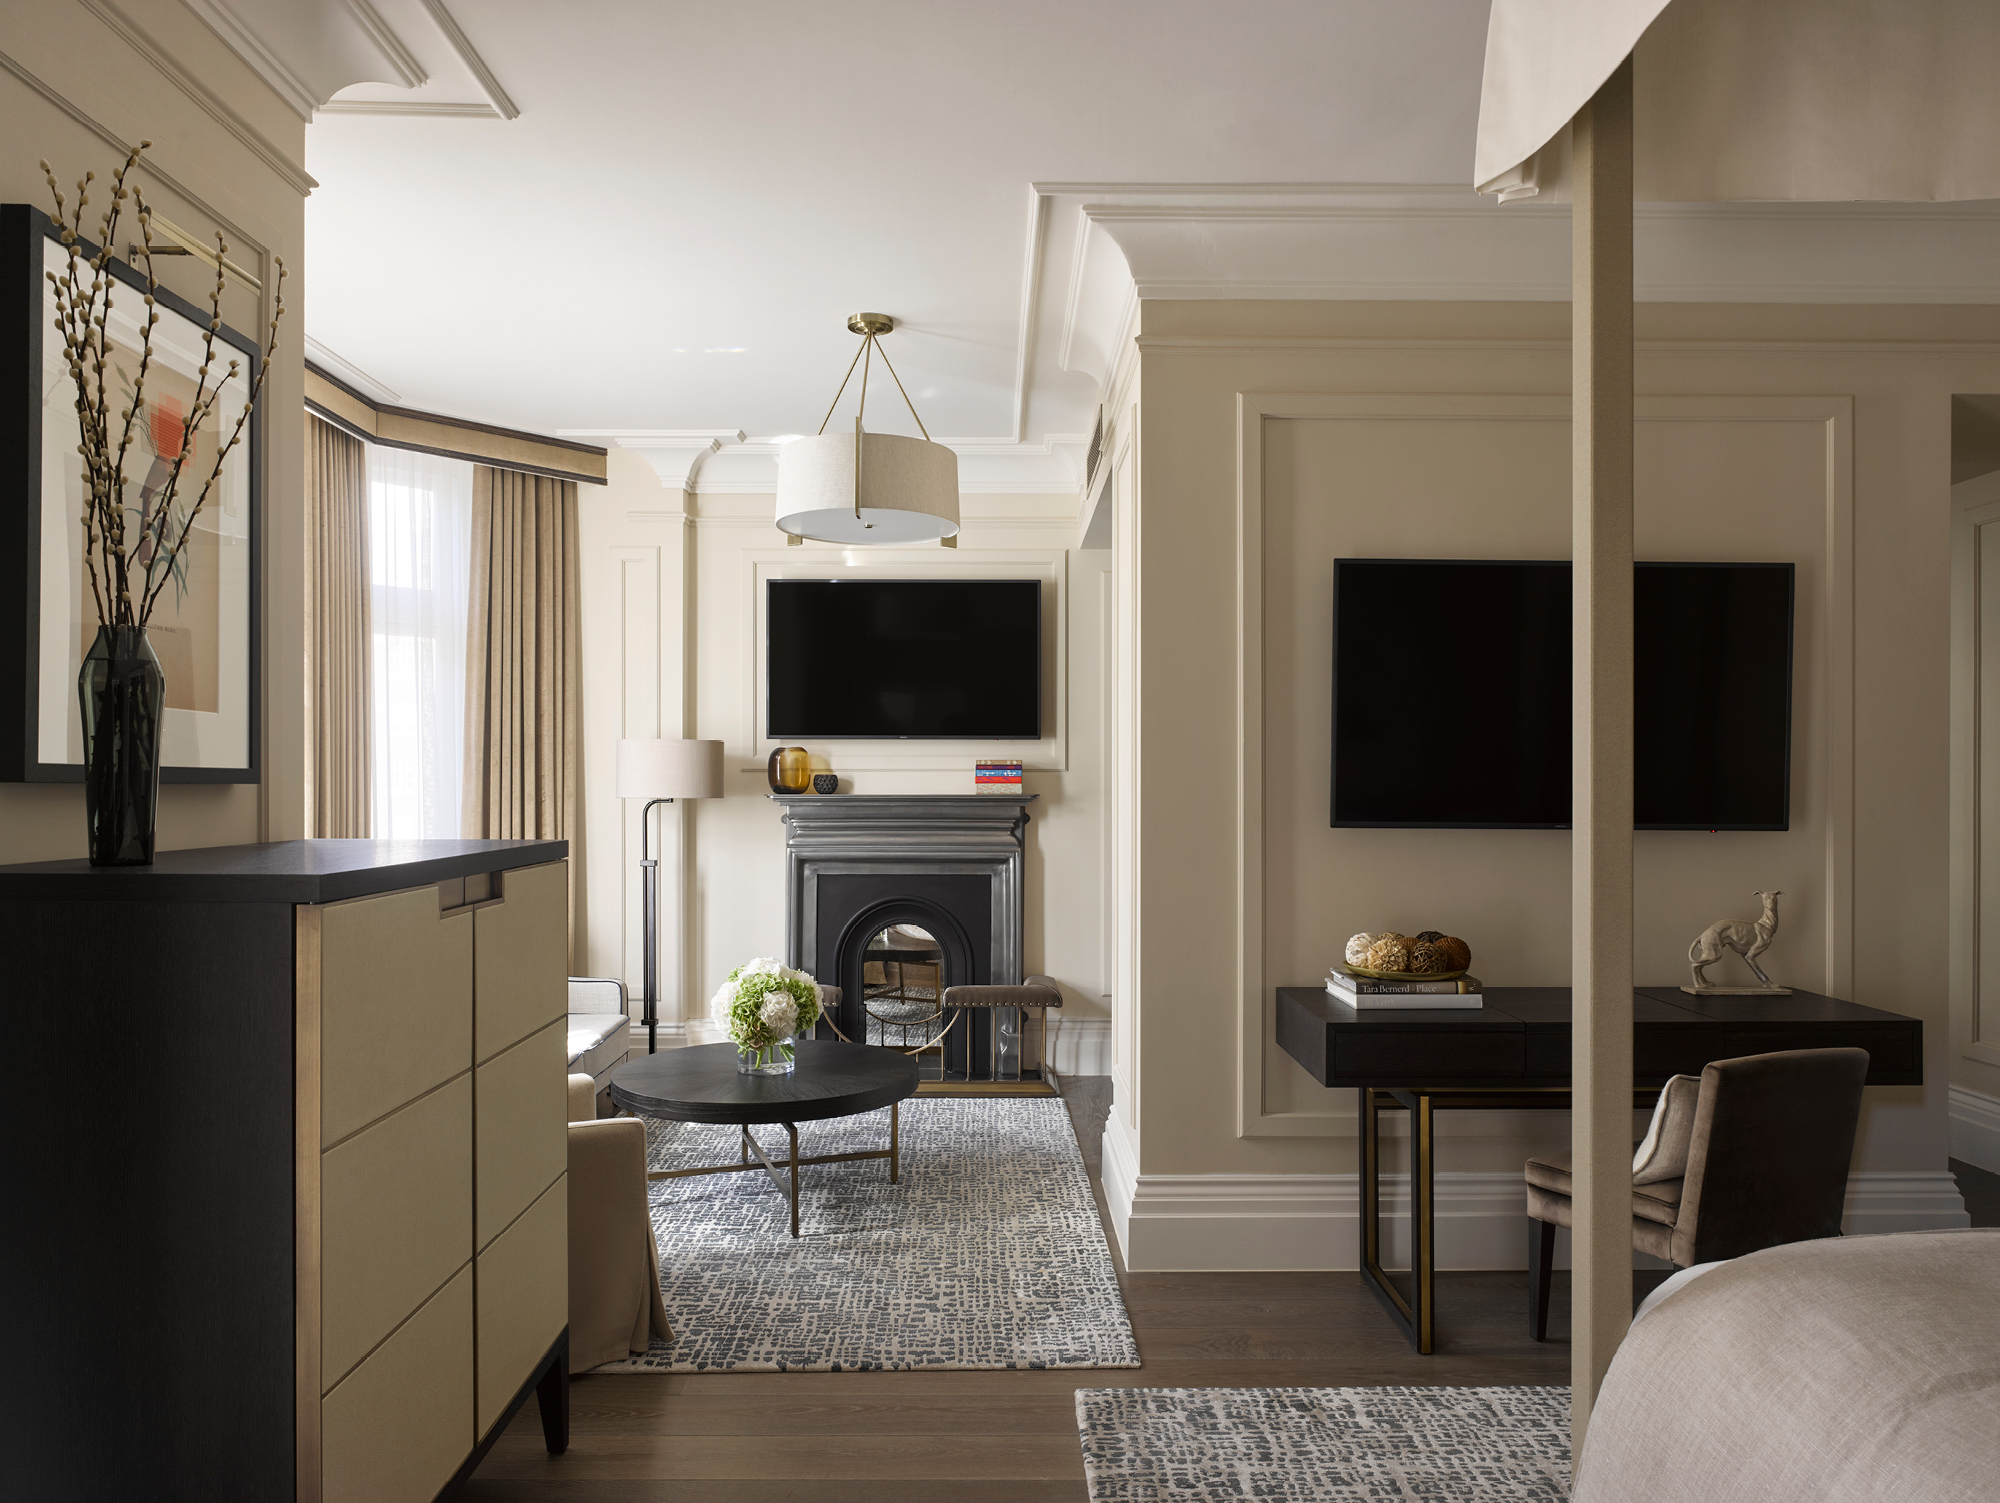 The Kimpton Fitzroy London has 334 bedrooms